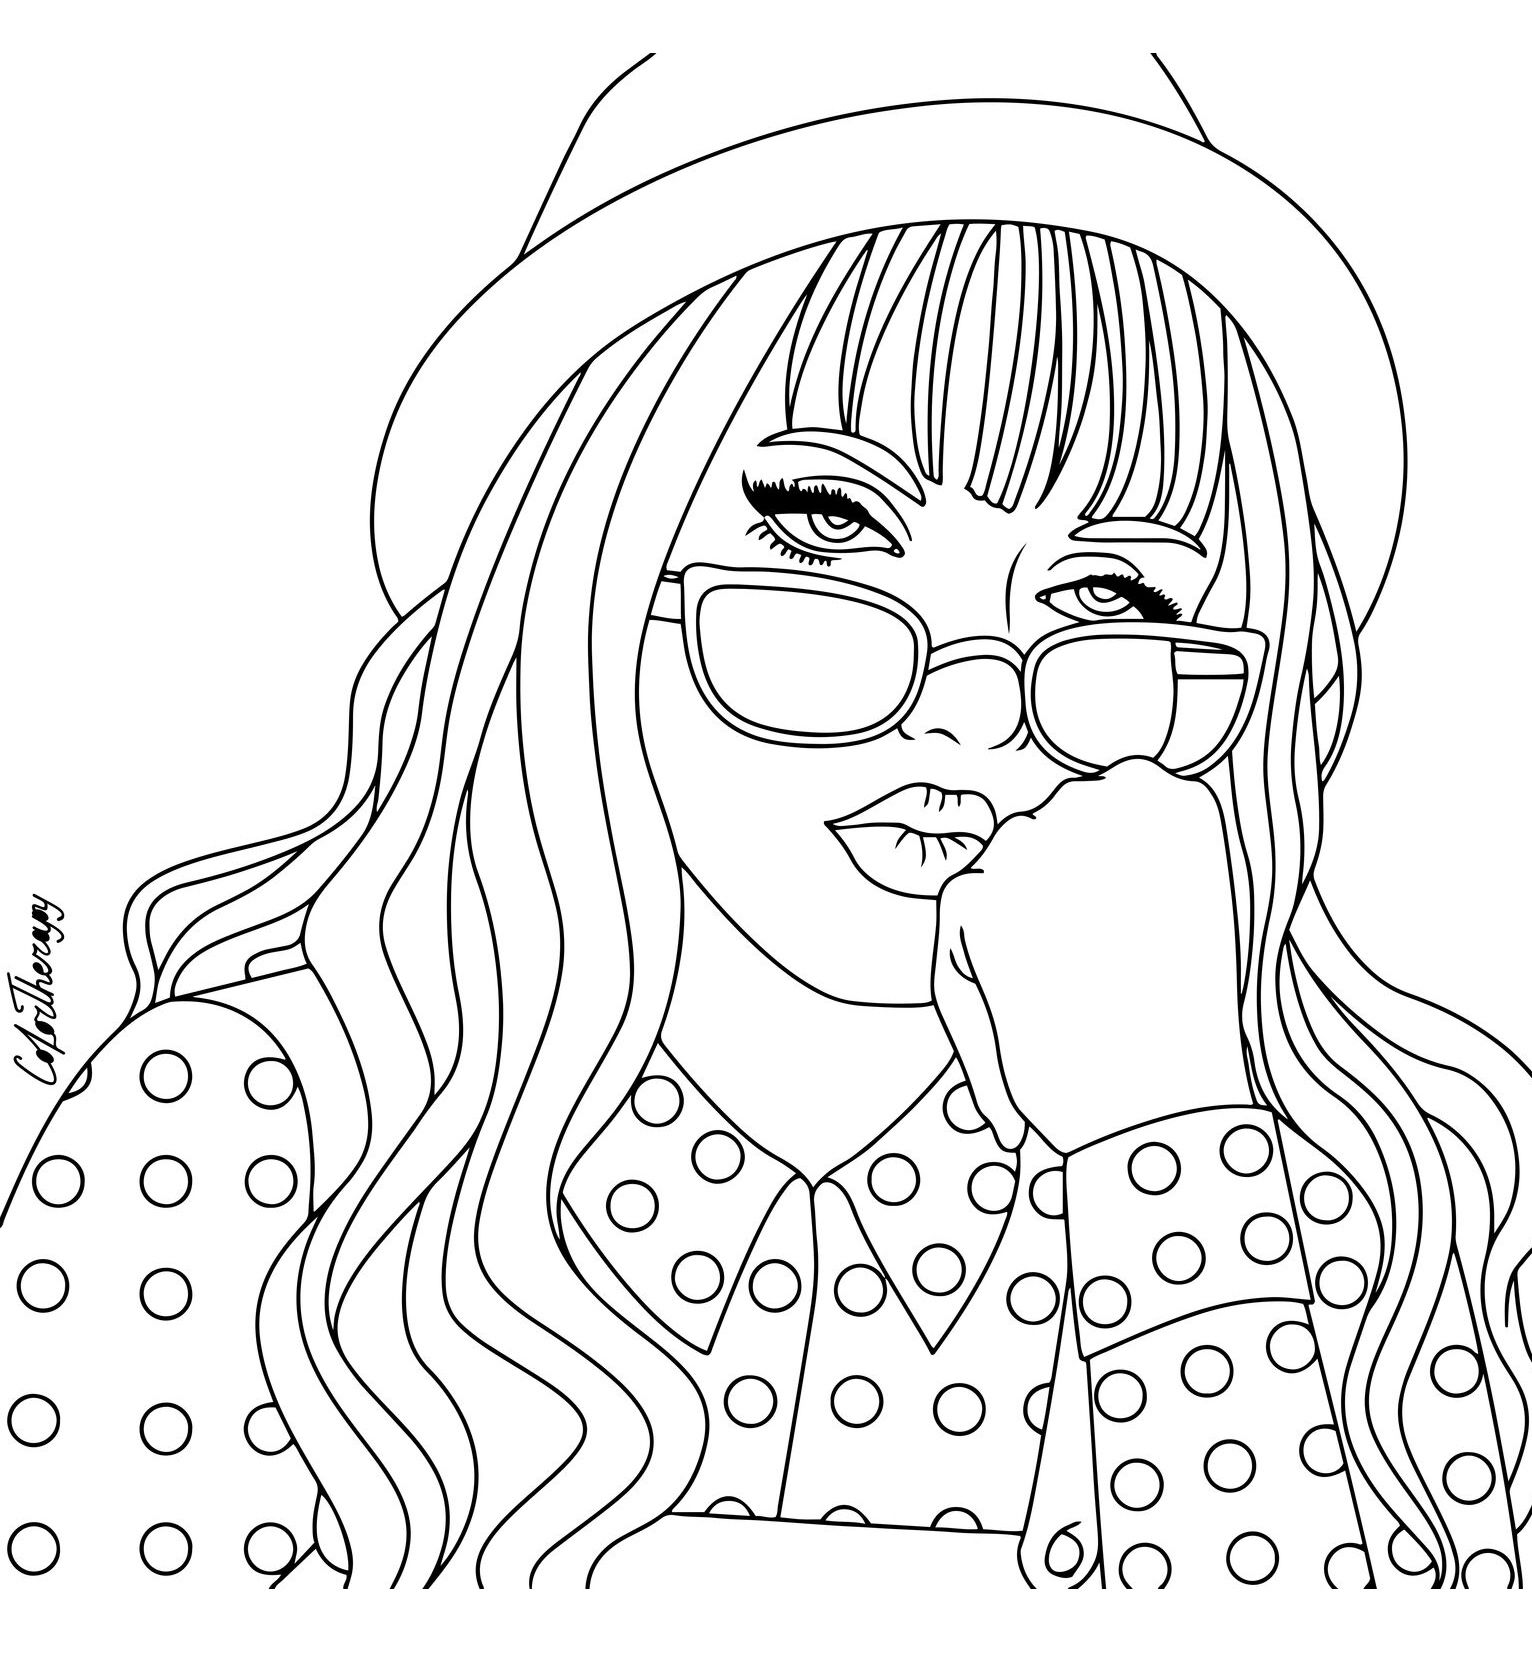 The Sneakpeek For The Next Gift Of The Day Tomorrow Do You Like This One Hipster Lady People Coloring Pages Cute Coloring Pages Turtle Coloring Pages